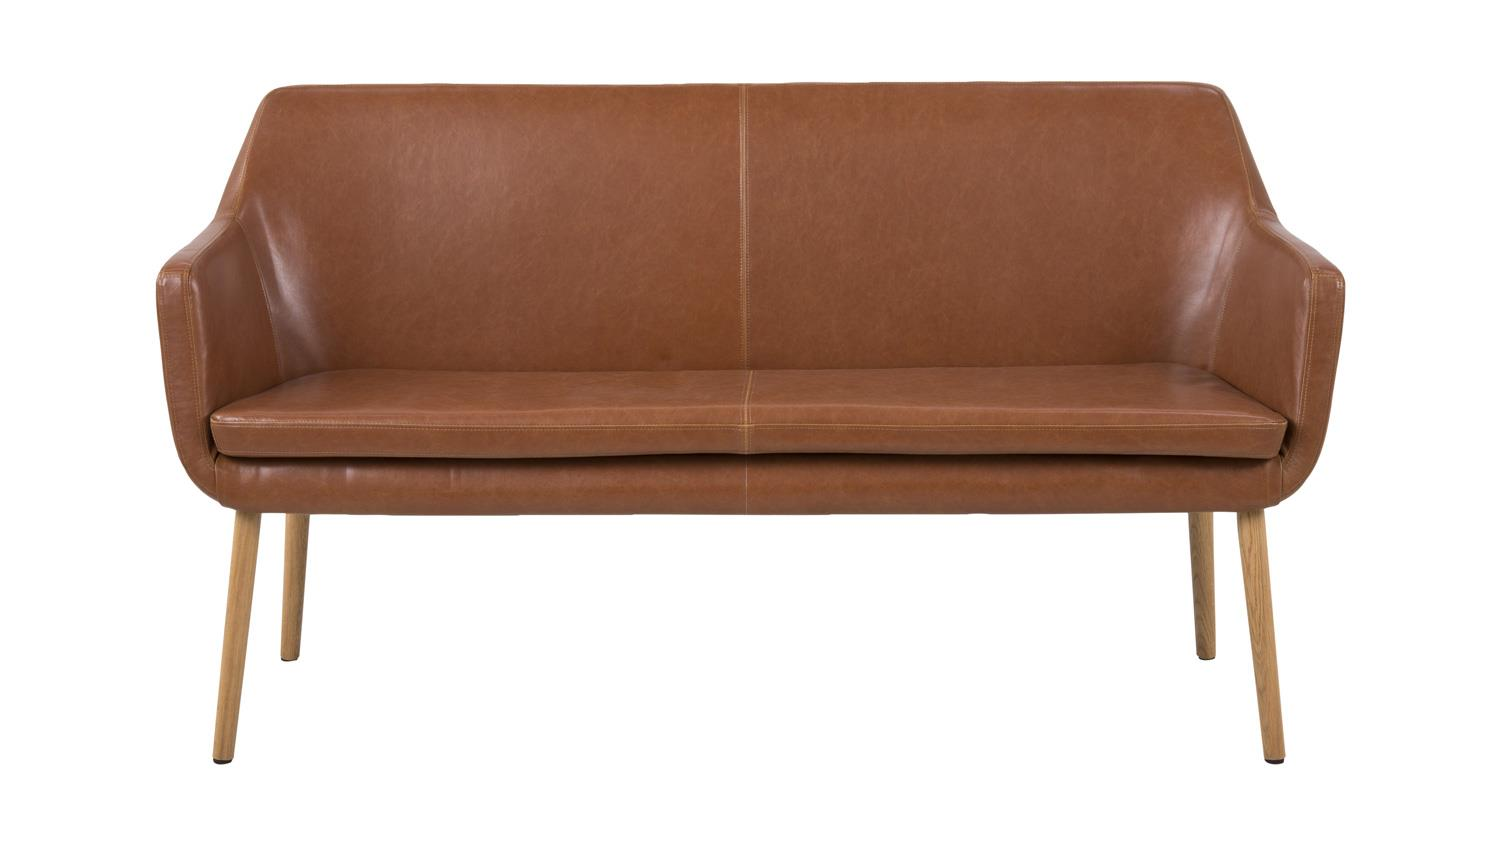 sofa nora sofabank in lederlook vintage braun cognac eiche. Black Bedroom Furniture Sets. Home Design Ideas